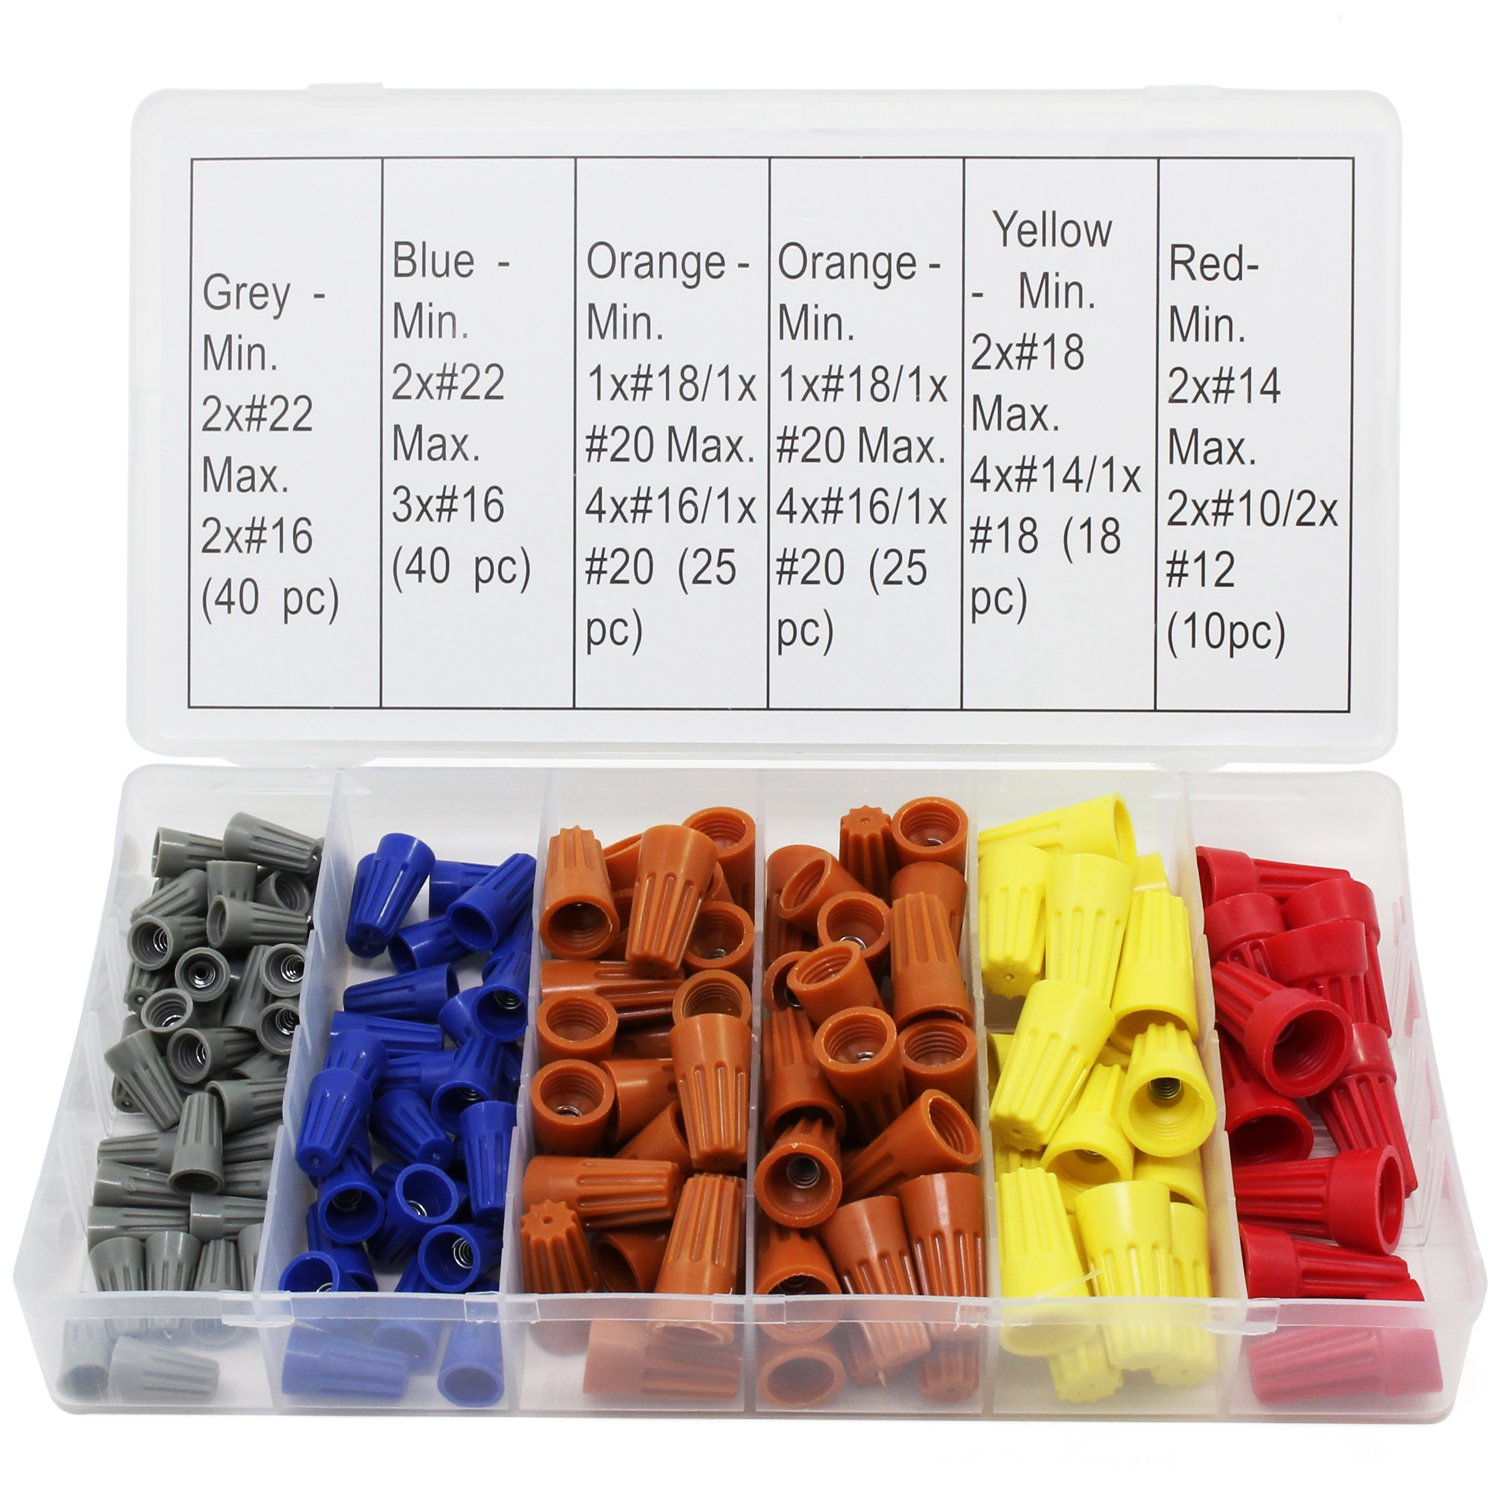 OCR Electrical Wire Connector Twist-On Screw Terminal Spring Inserted Nuts Caps Assortment Set 158PCS by OCR (Image #1)